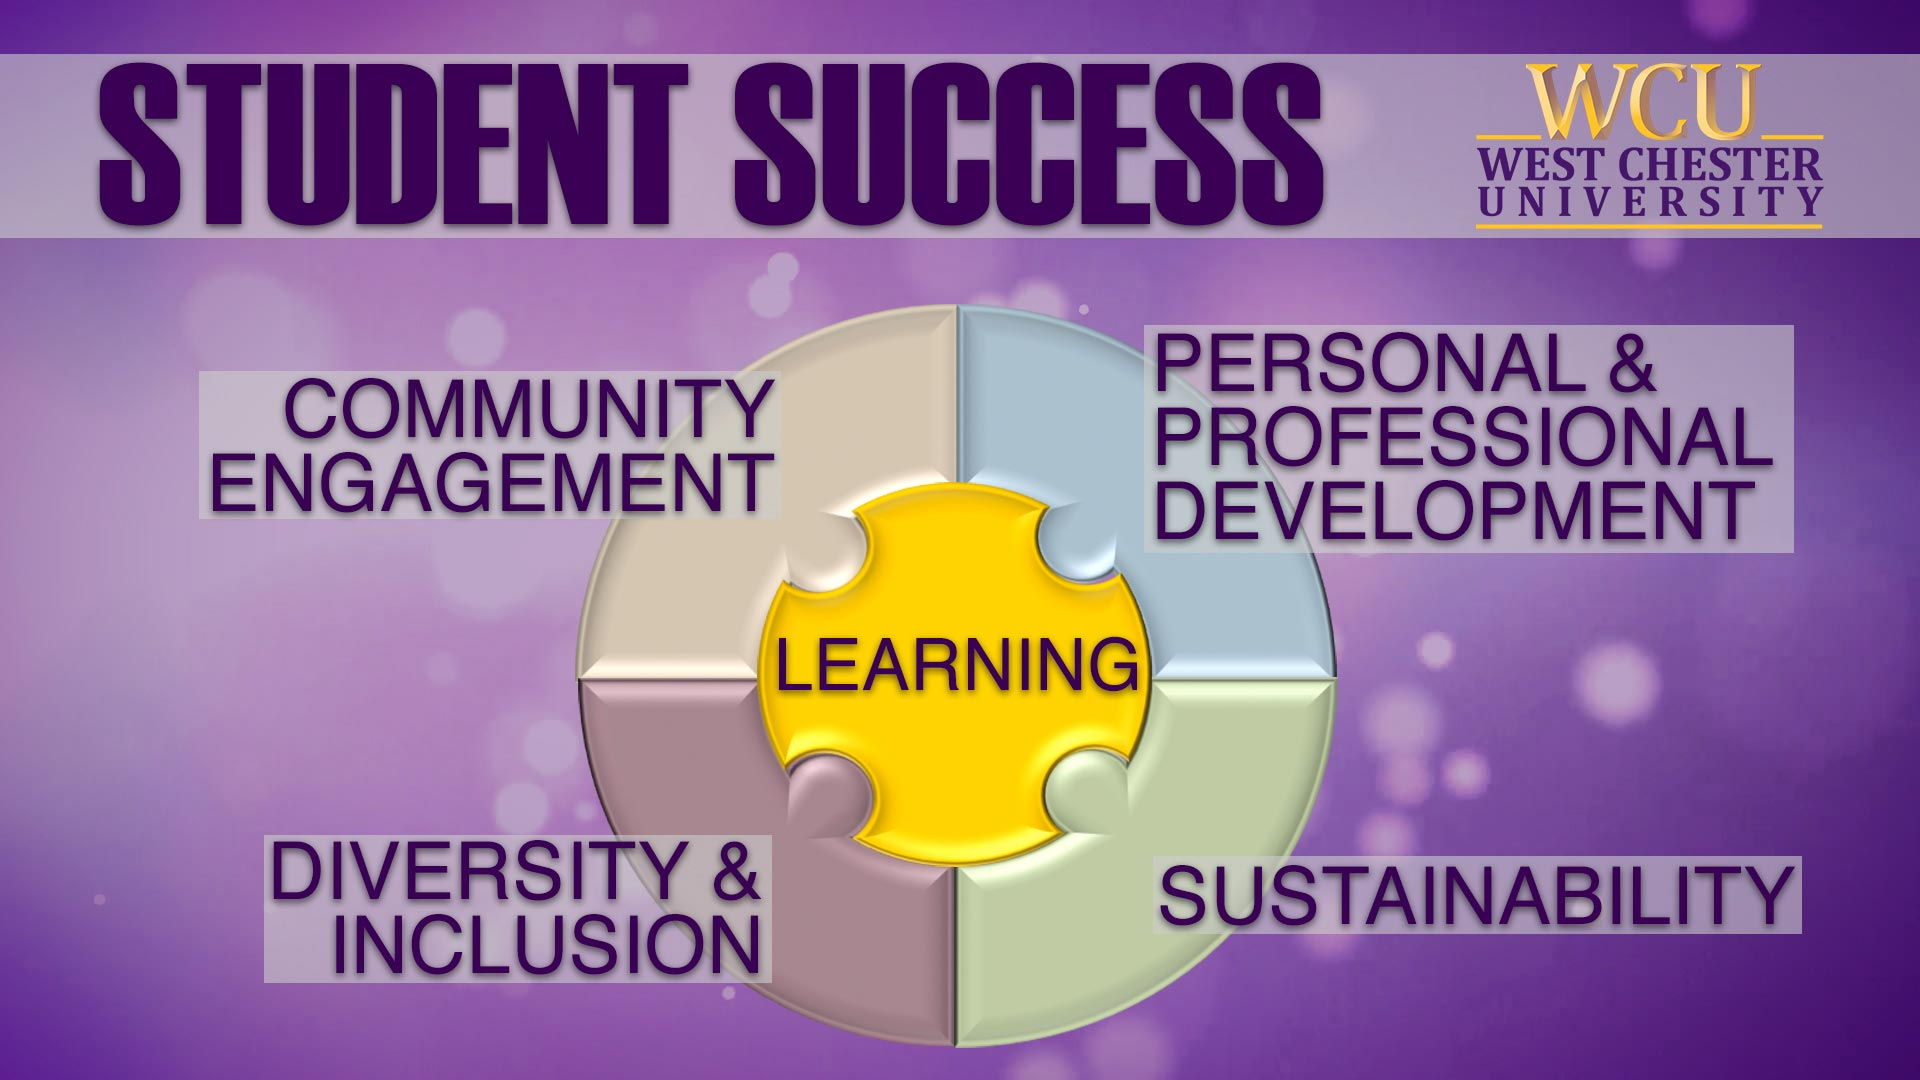 Student Success - Community Engagement, Personal & Professional Development, Sustainability, Diversity & Inclusion, Learning